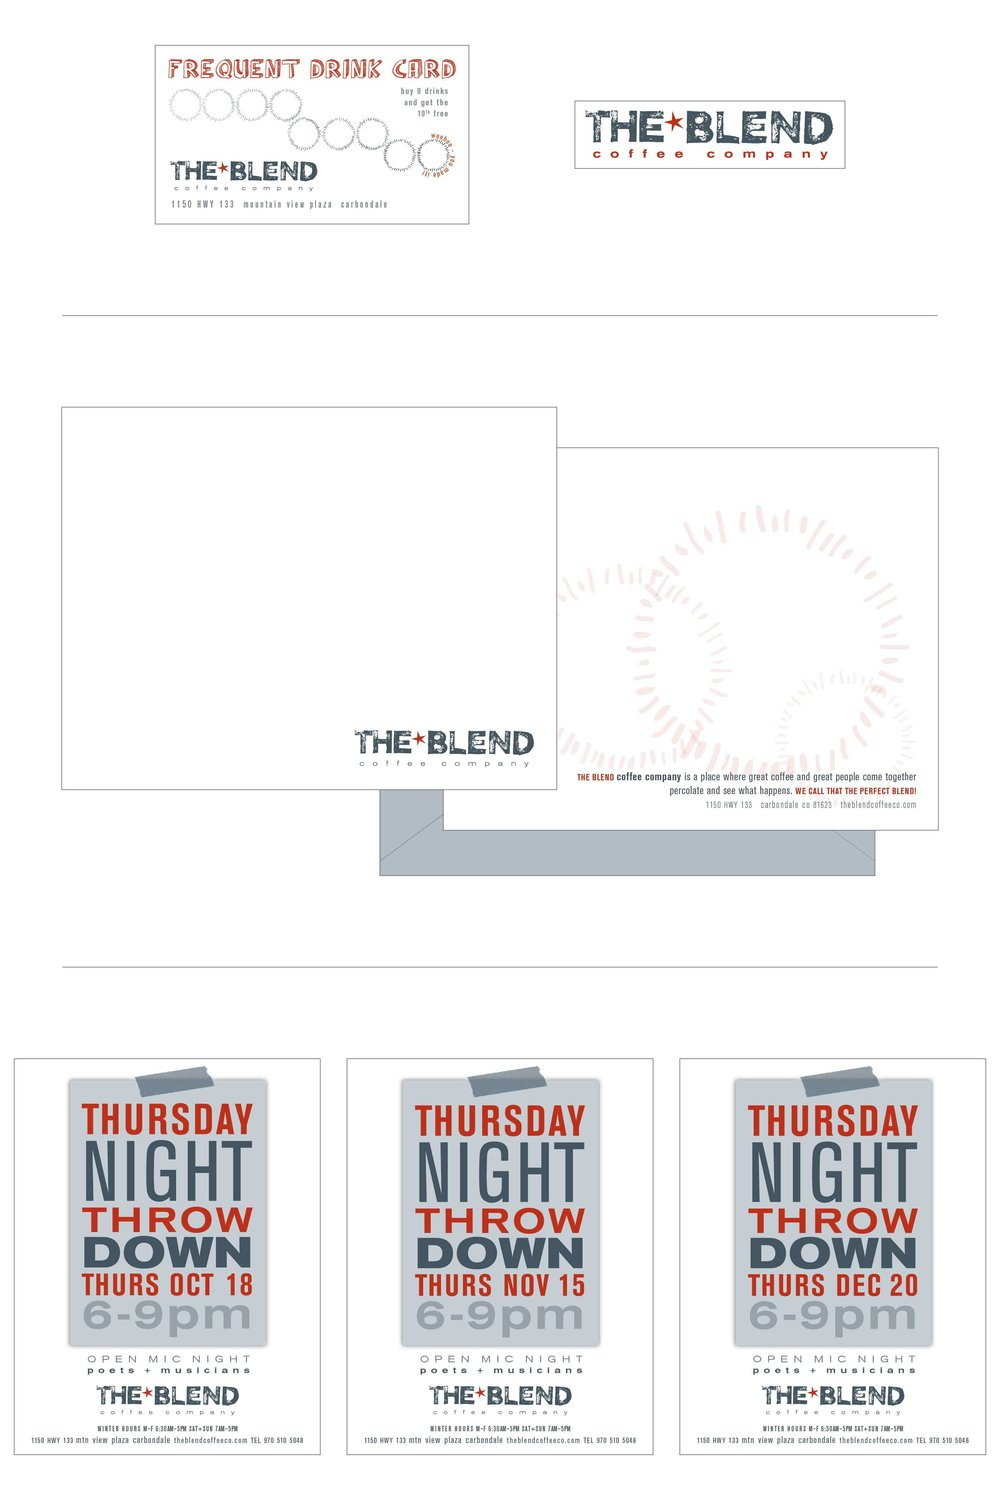 The Blend brand collateral design by The Qurious Effect, a brand and Squarespace web design company.